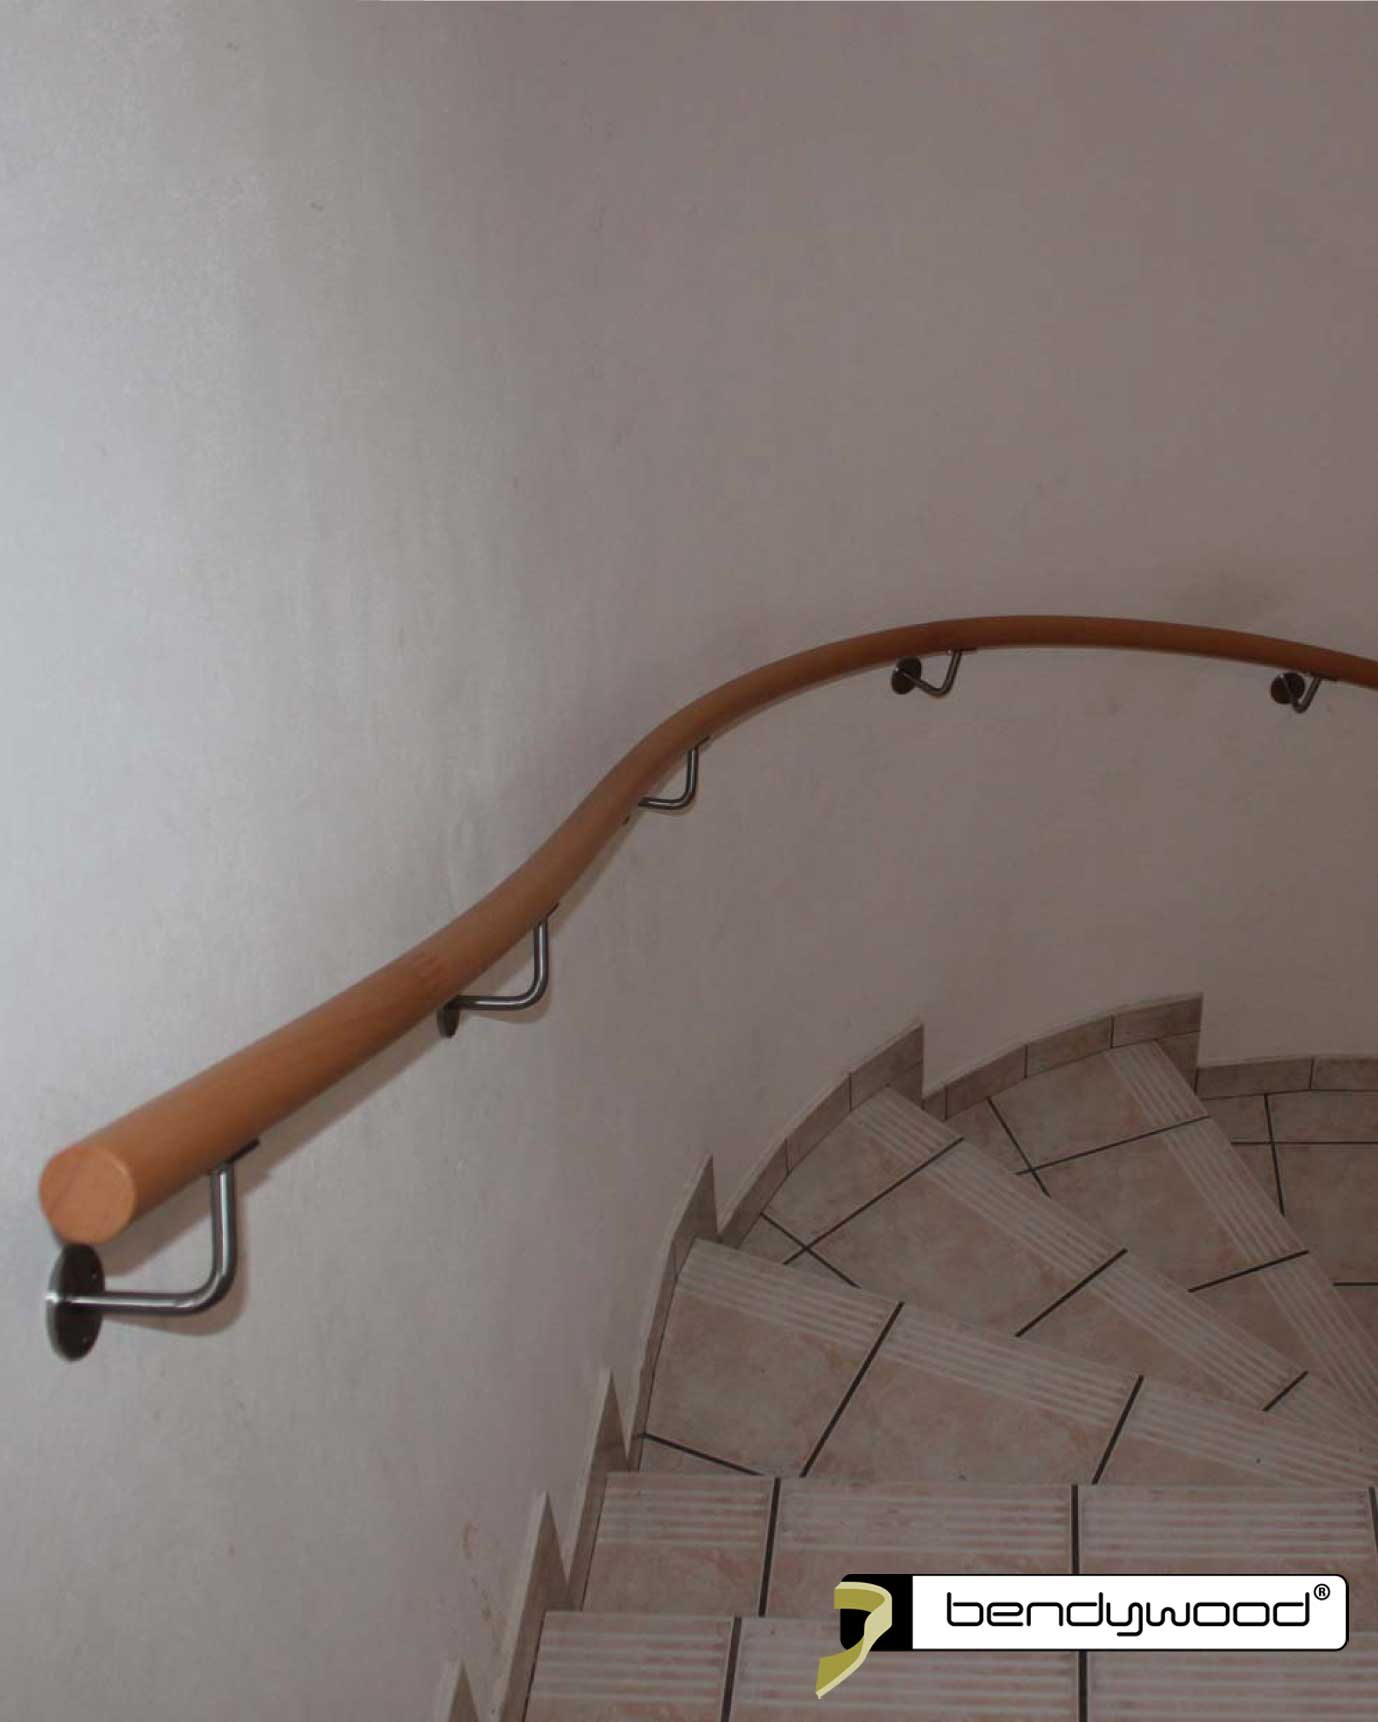 Round bending handrails in Bendywood®-beech for staircase with irregular bending radius